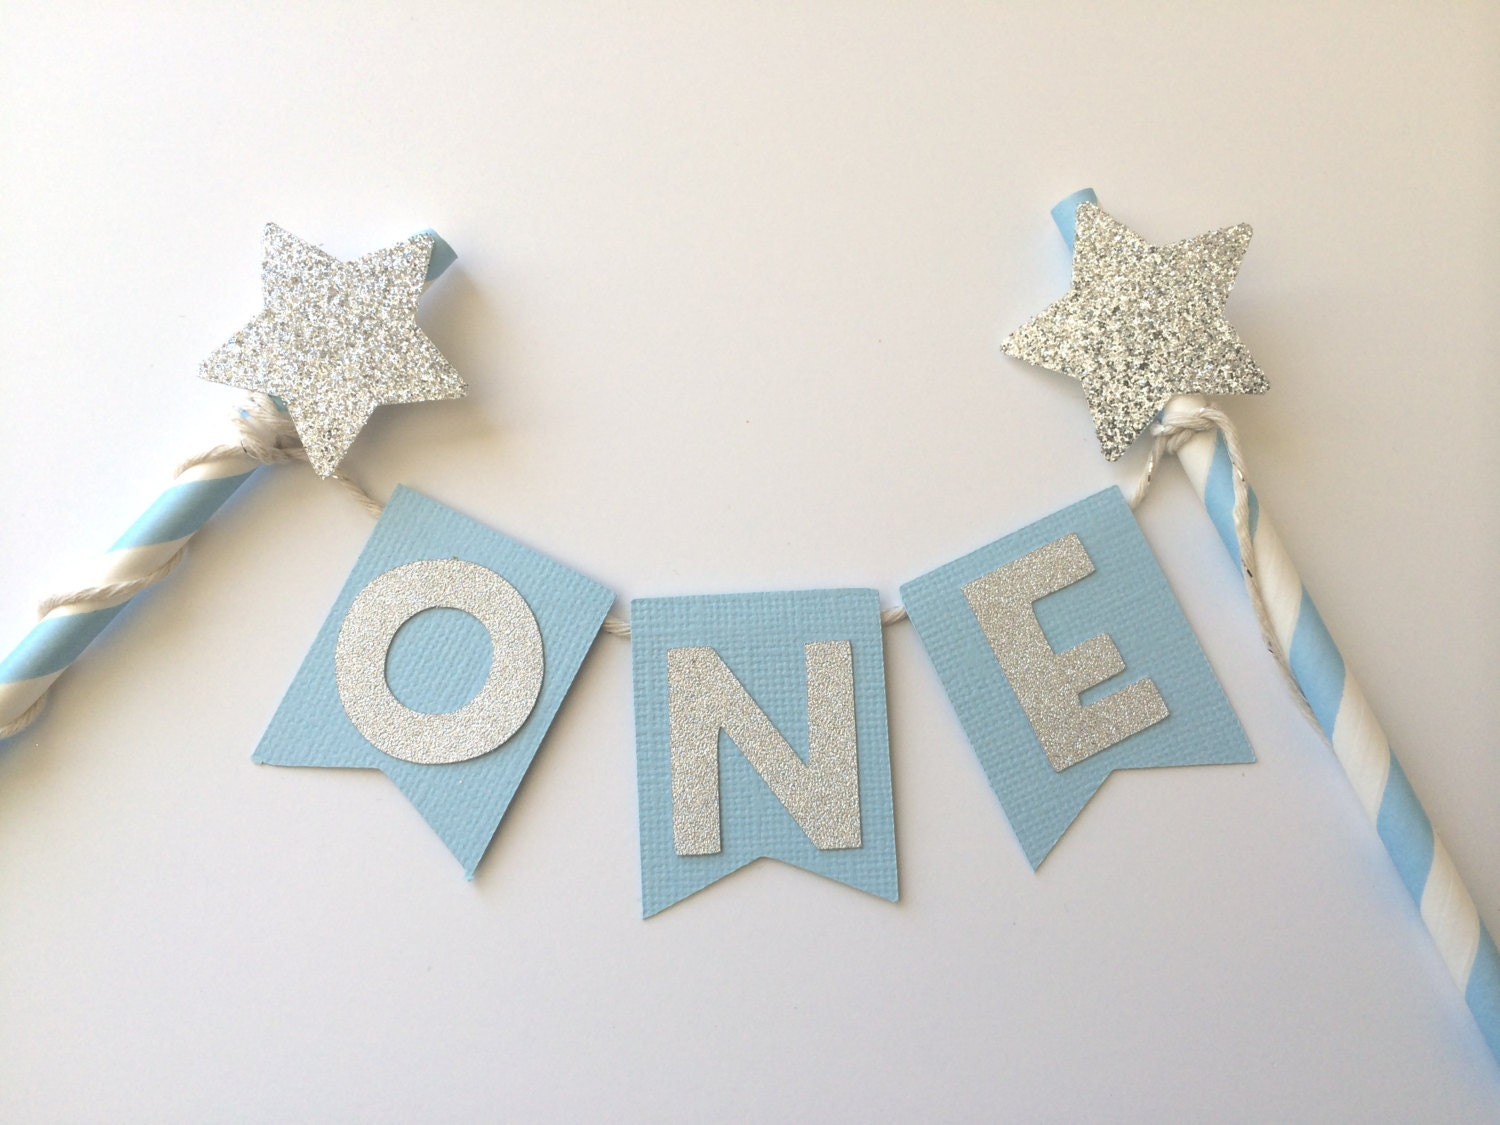 The Original Blue and Silver Glitter Cake Topper with Star